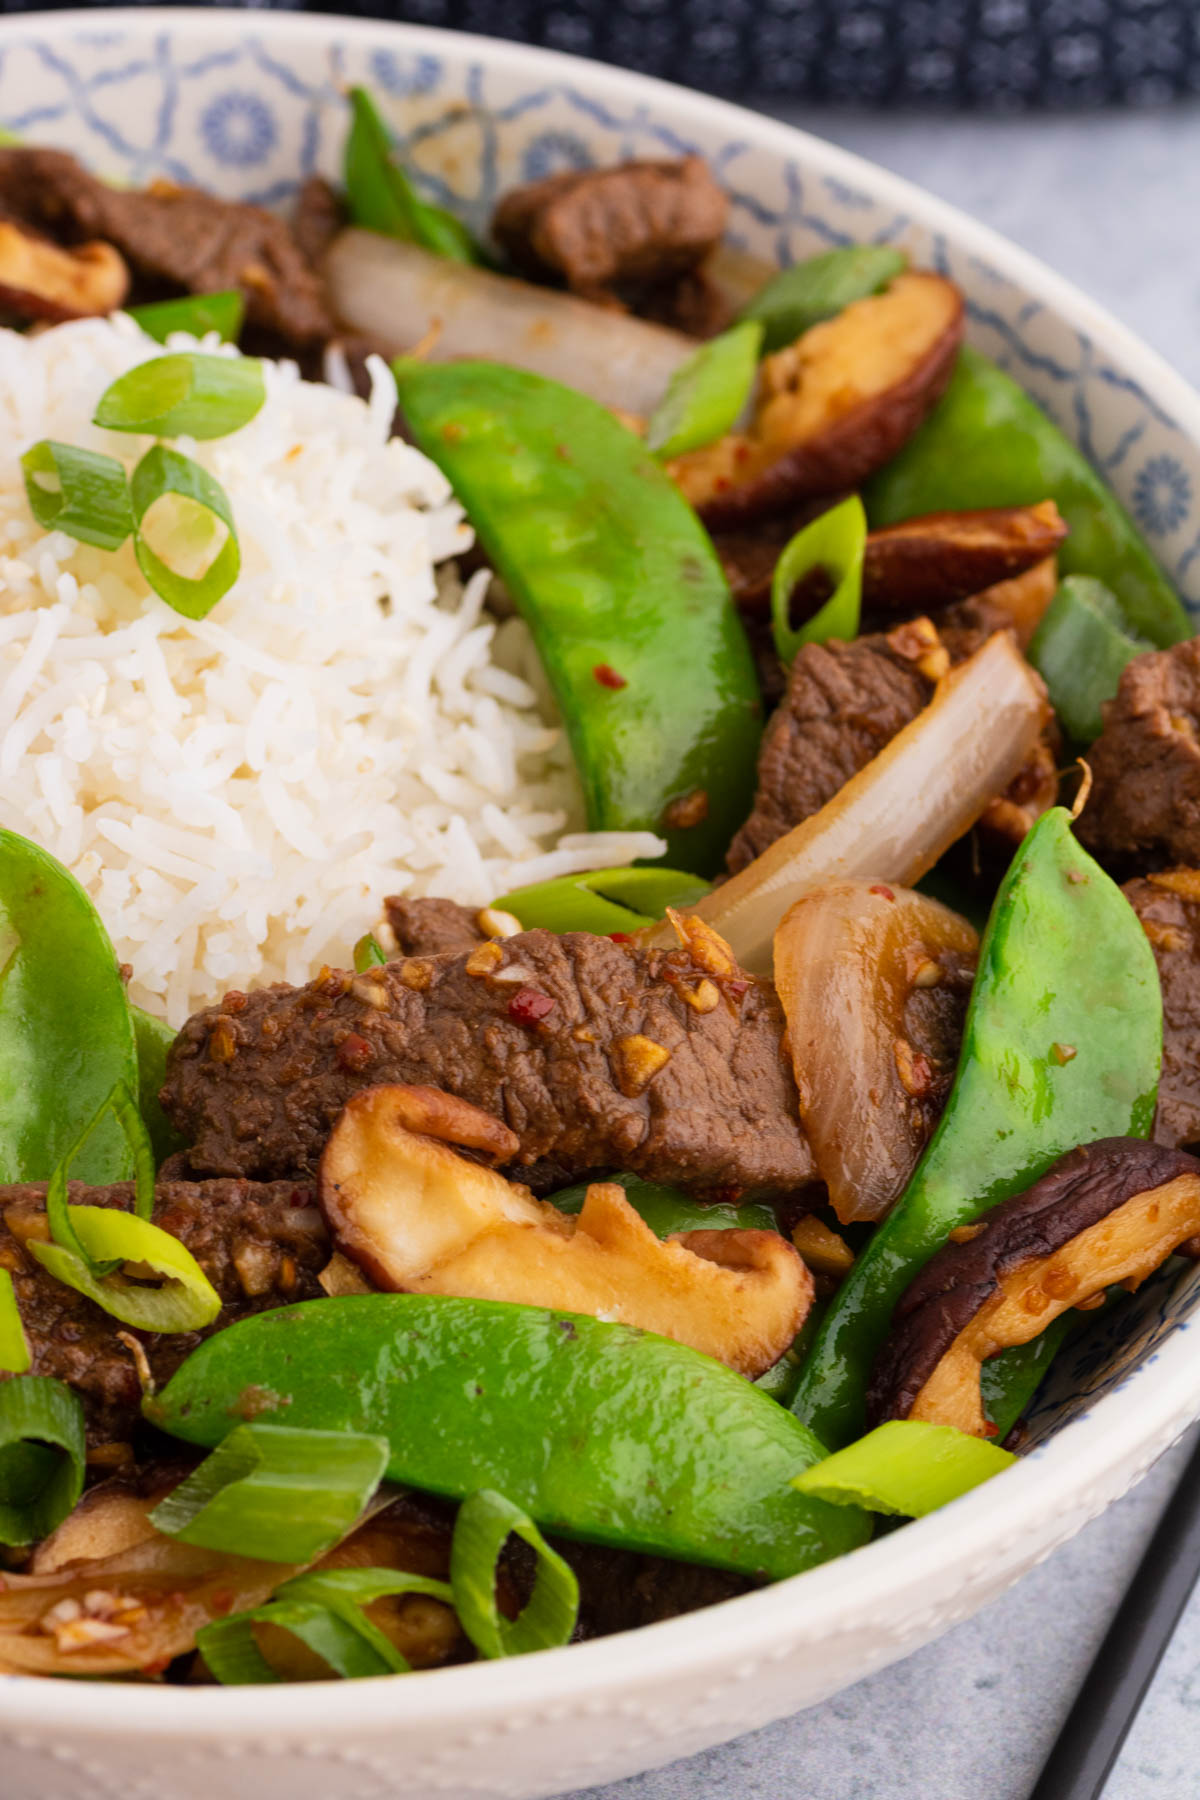 A bowl filled with beef stir fry and snow peas, white rice, shiitake mushrooms.